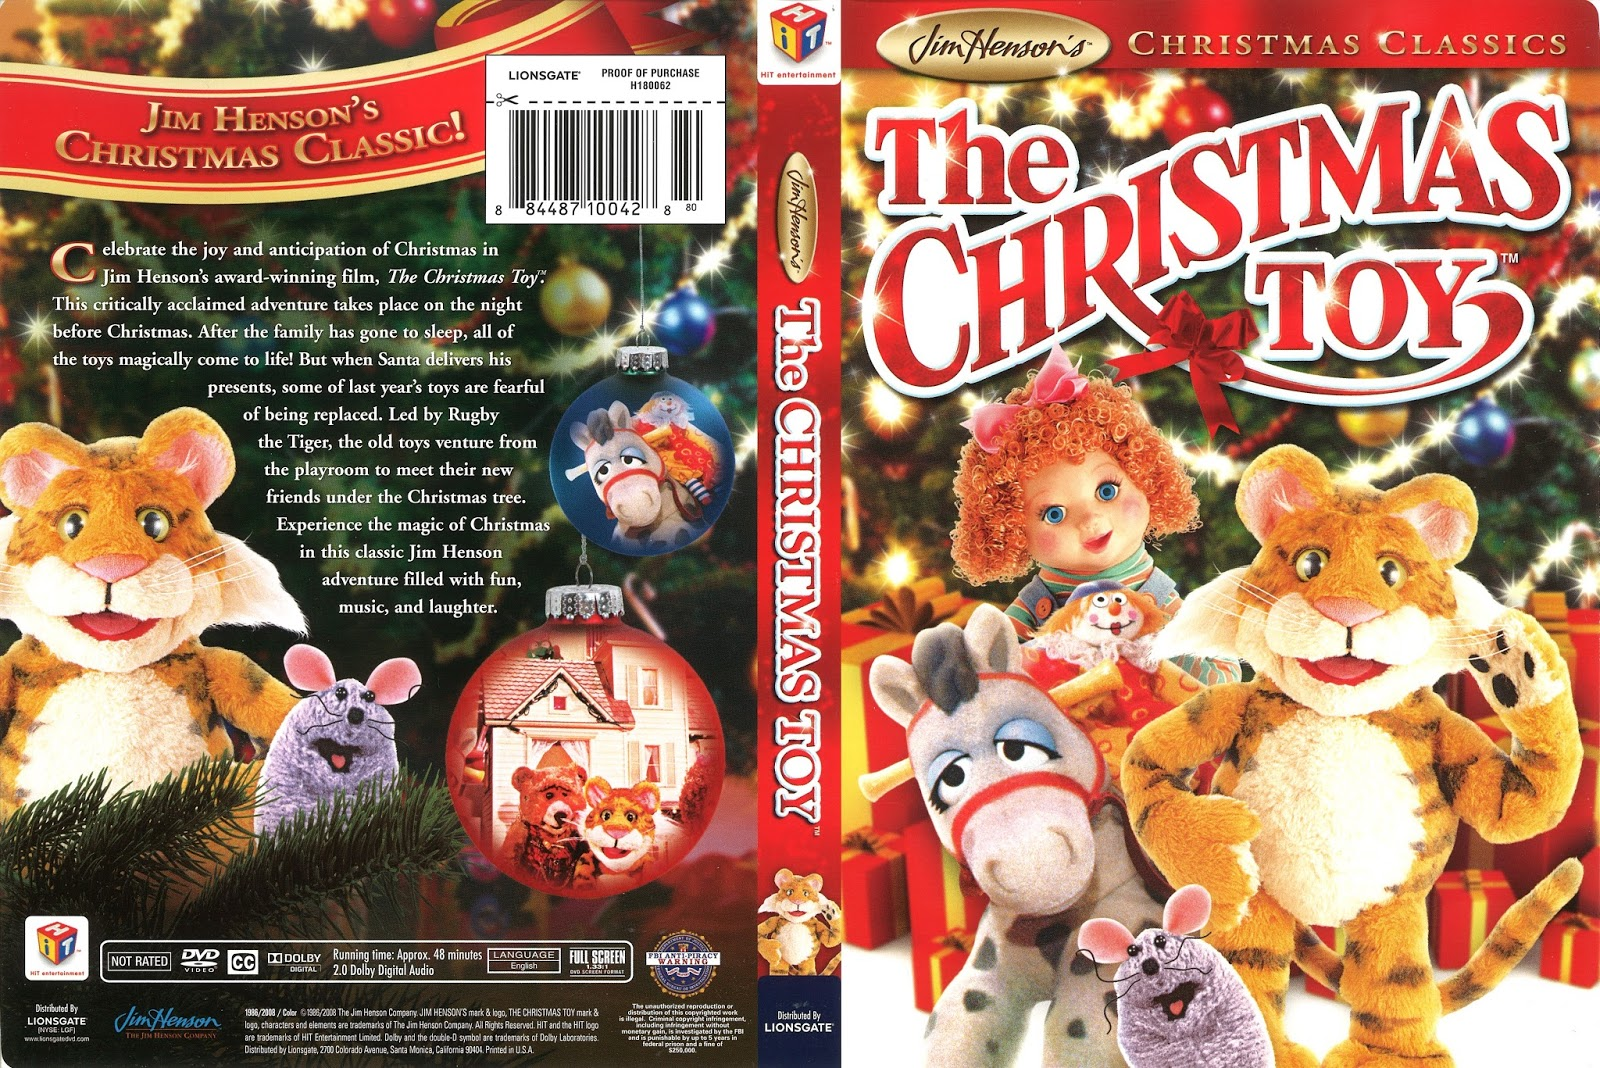 20 Years Before 2000: The Christmas Toy